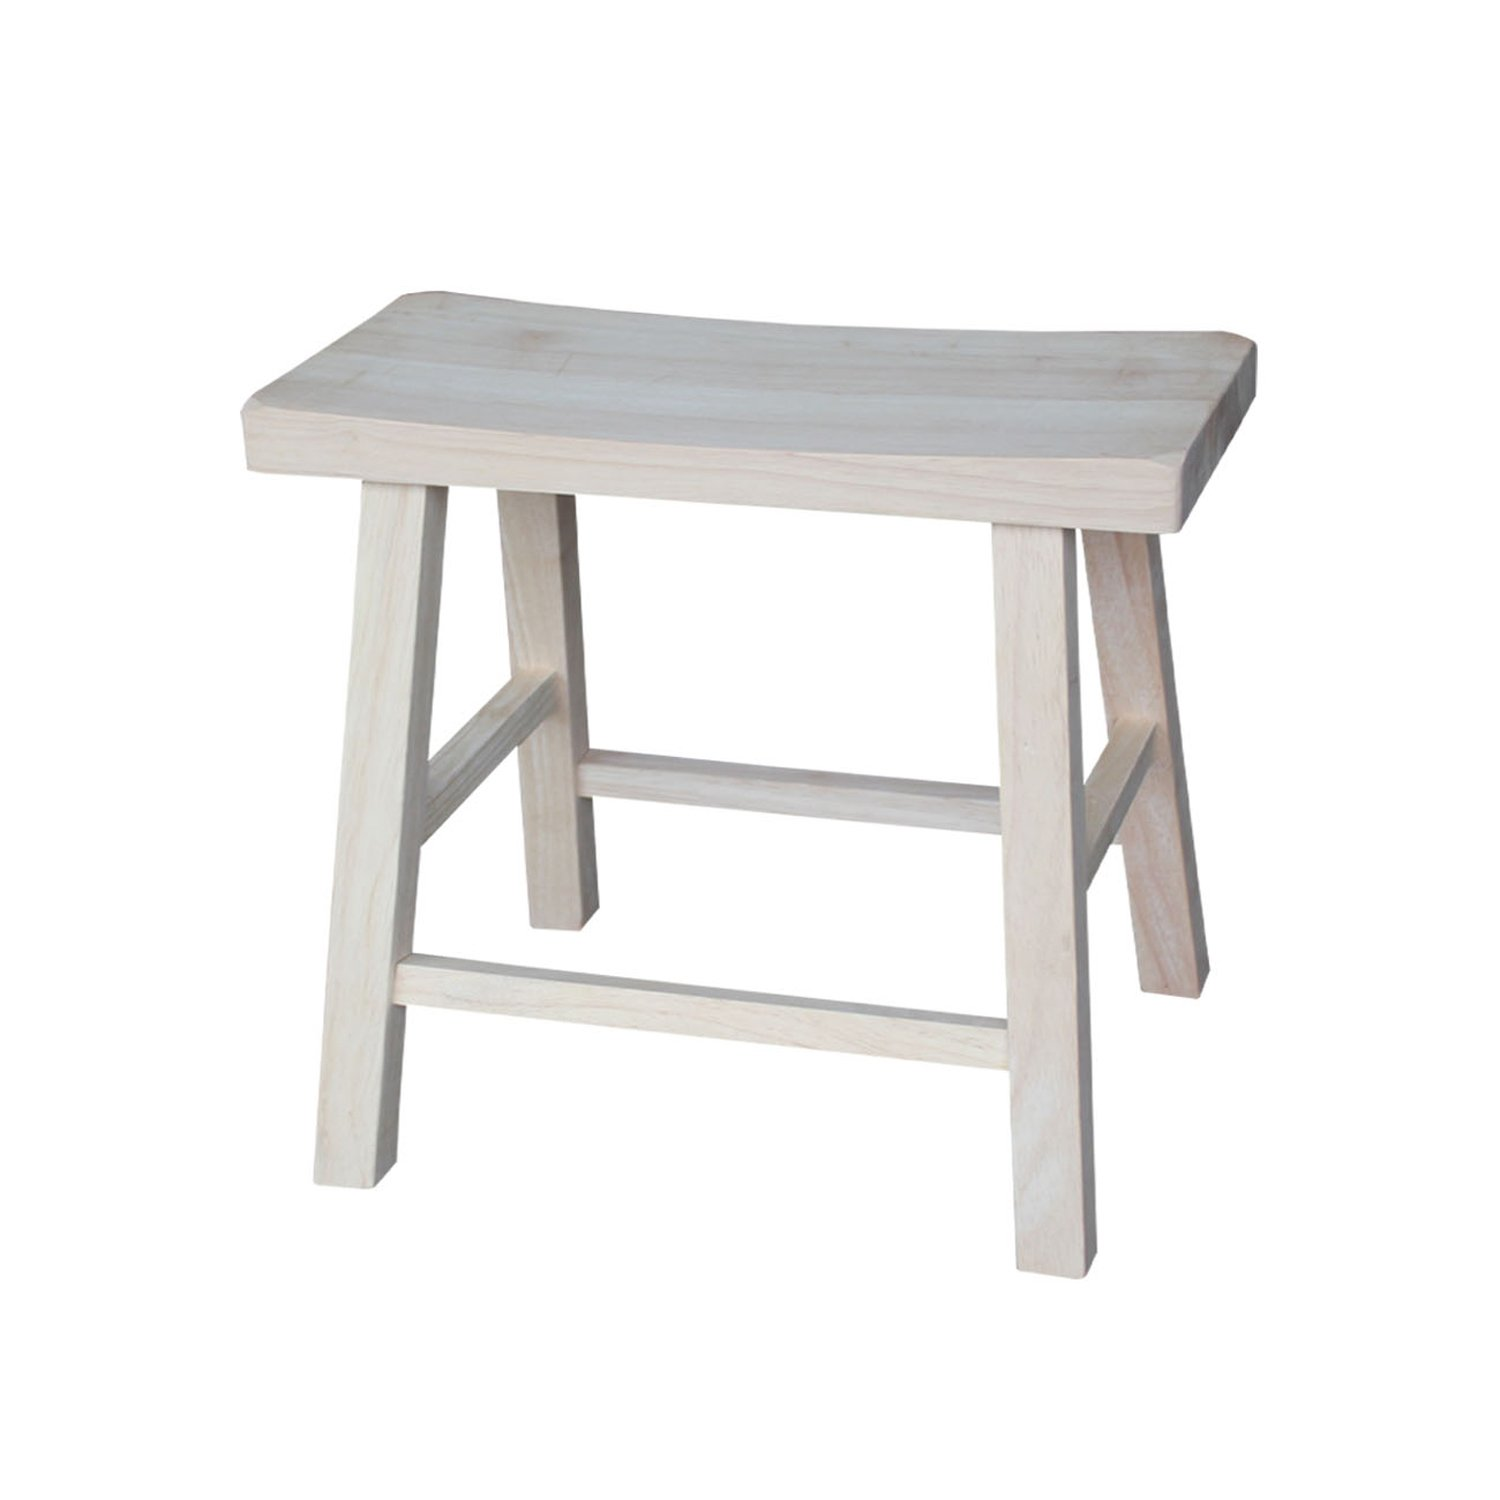 International Concepts 1S-681 18-Inch Saddle Seat Stool, Unfinished by International Concepts